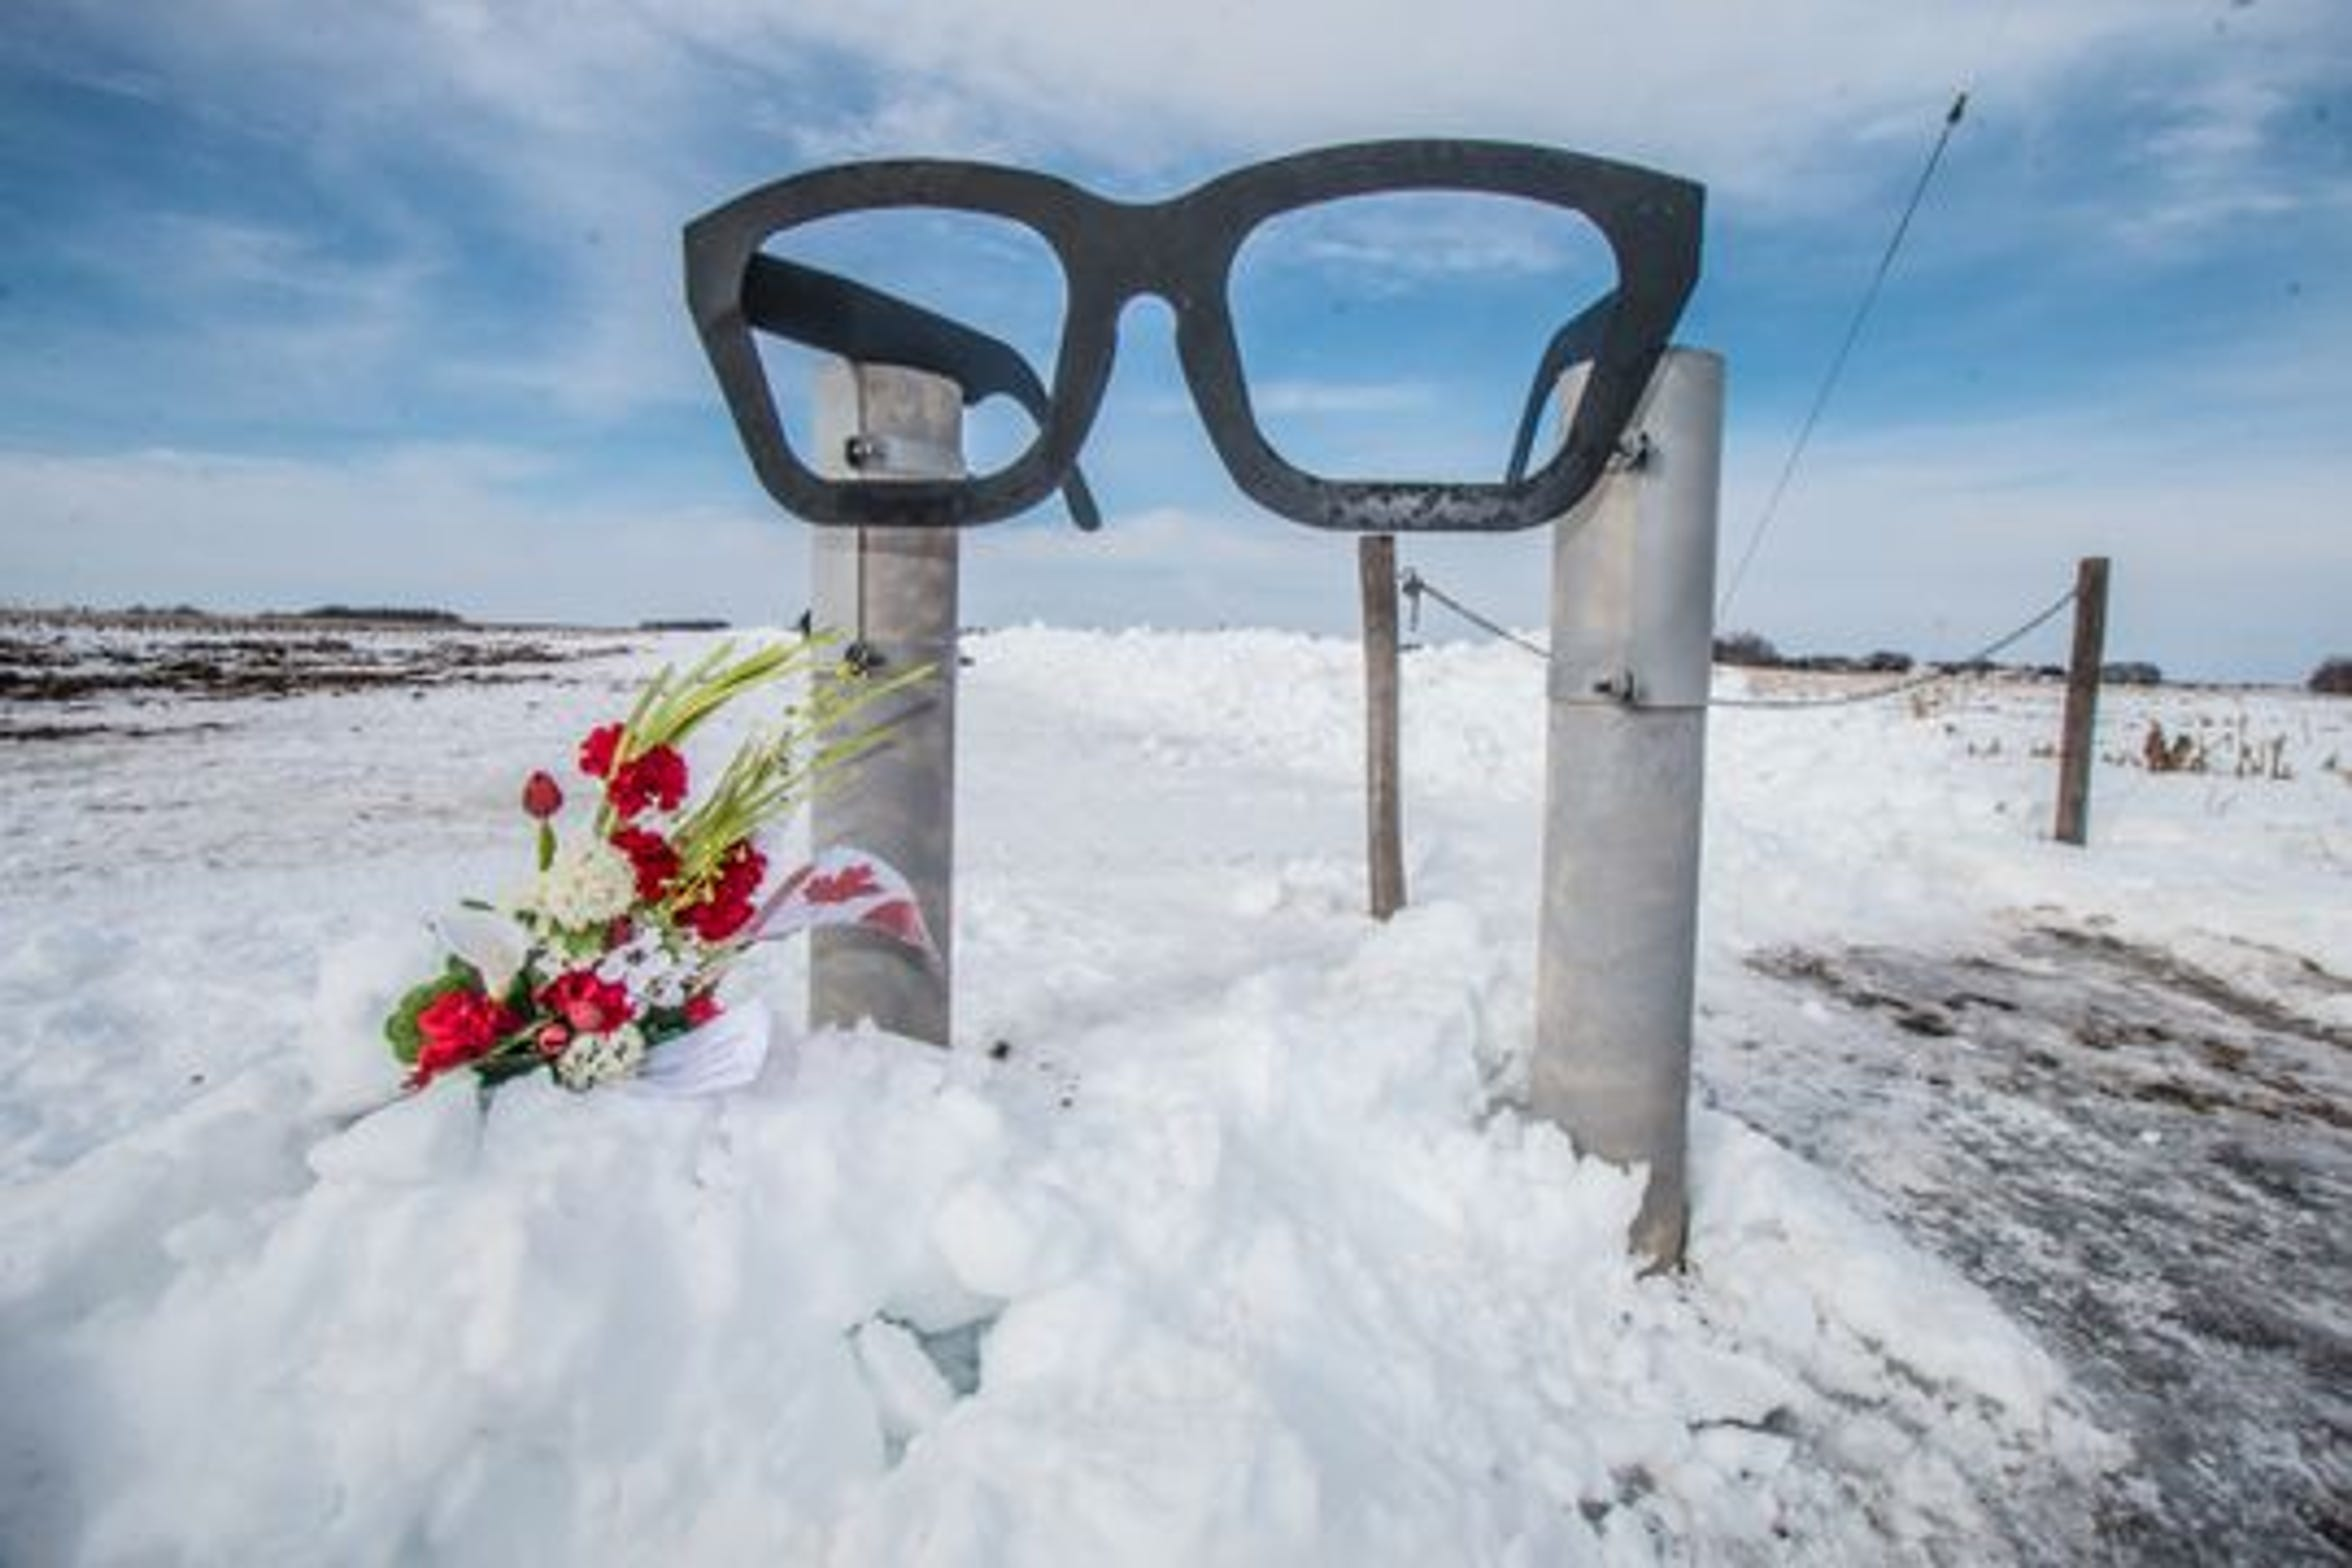 Black eyeglasses mark the trek to the site of a 1959 plane crash that killed Buddy Holly, The Big Bopper, Ritchie Valens and the pilot. The site in Clear Lake, Iowa, and the Surf Ballroom where the trio performed, remain famous as the 60th anniversary of the crash approaches Feb. 3.